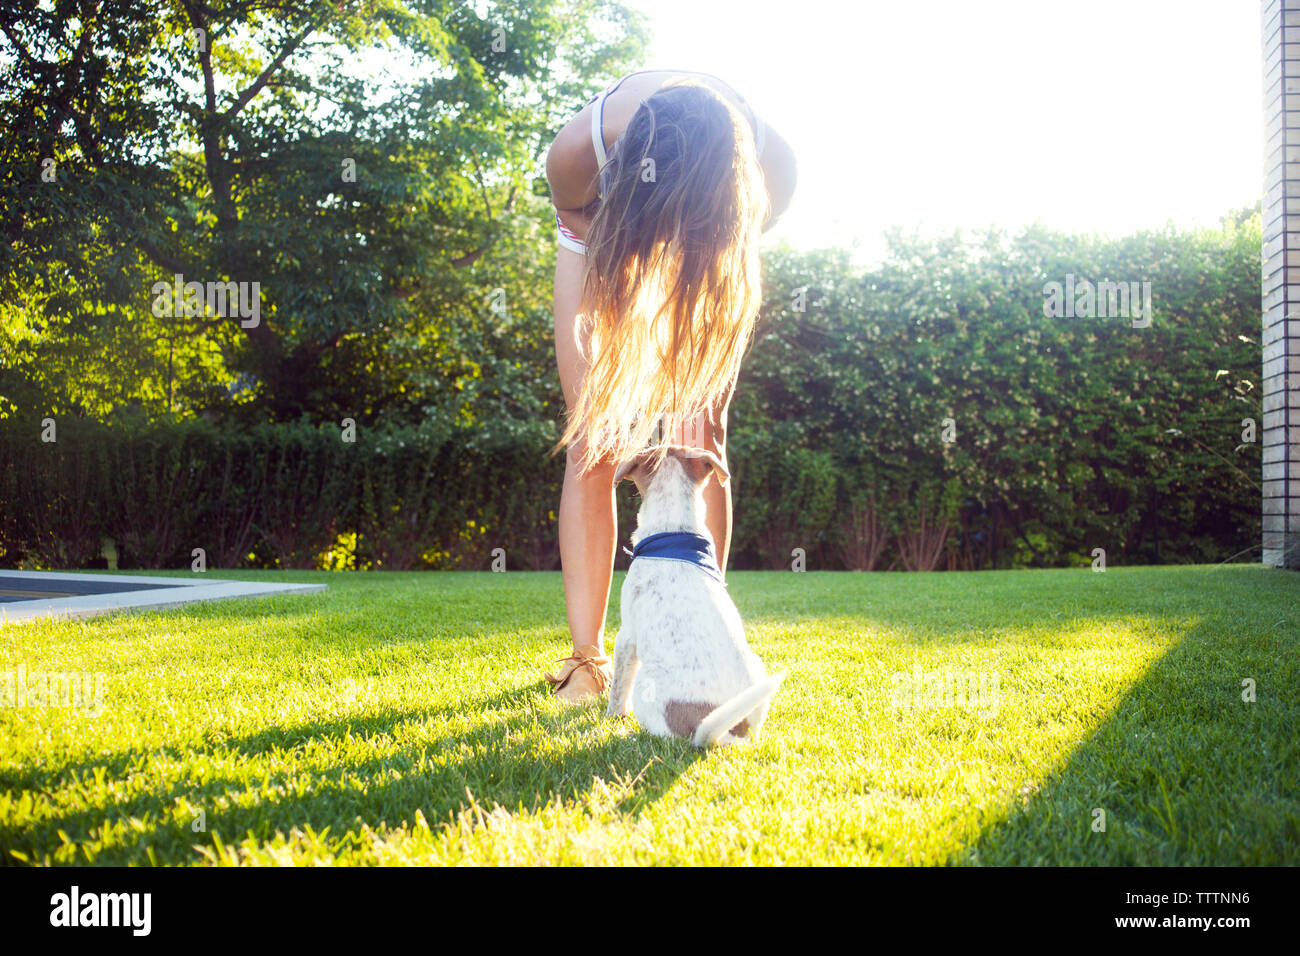 Woman bending over dog on grassy field at backyard - Stock Image